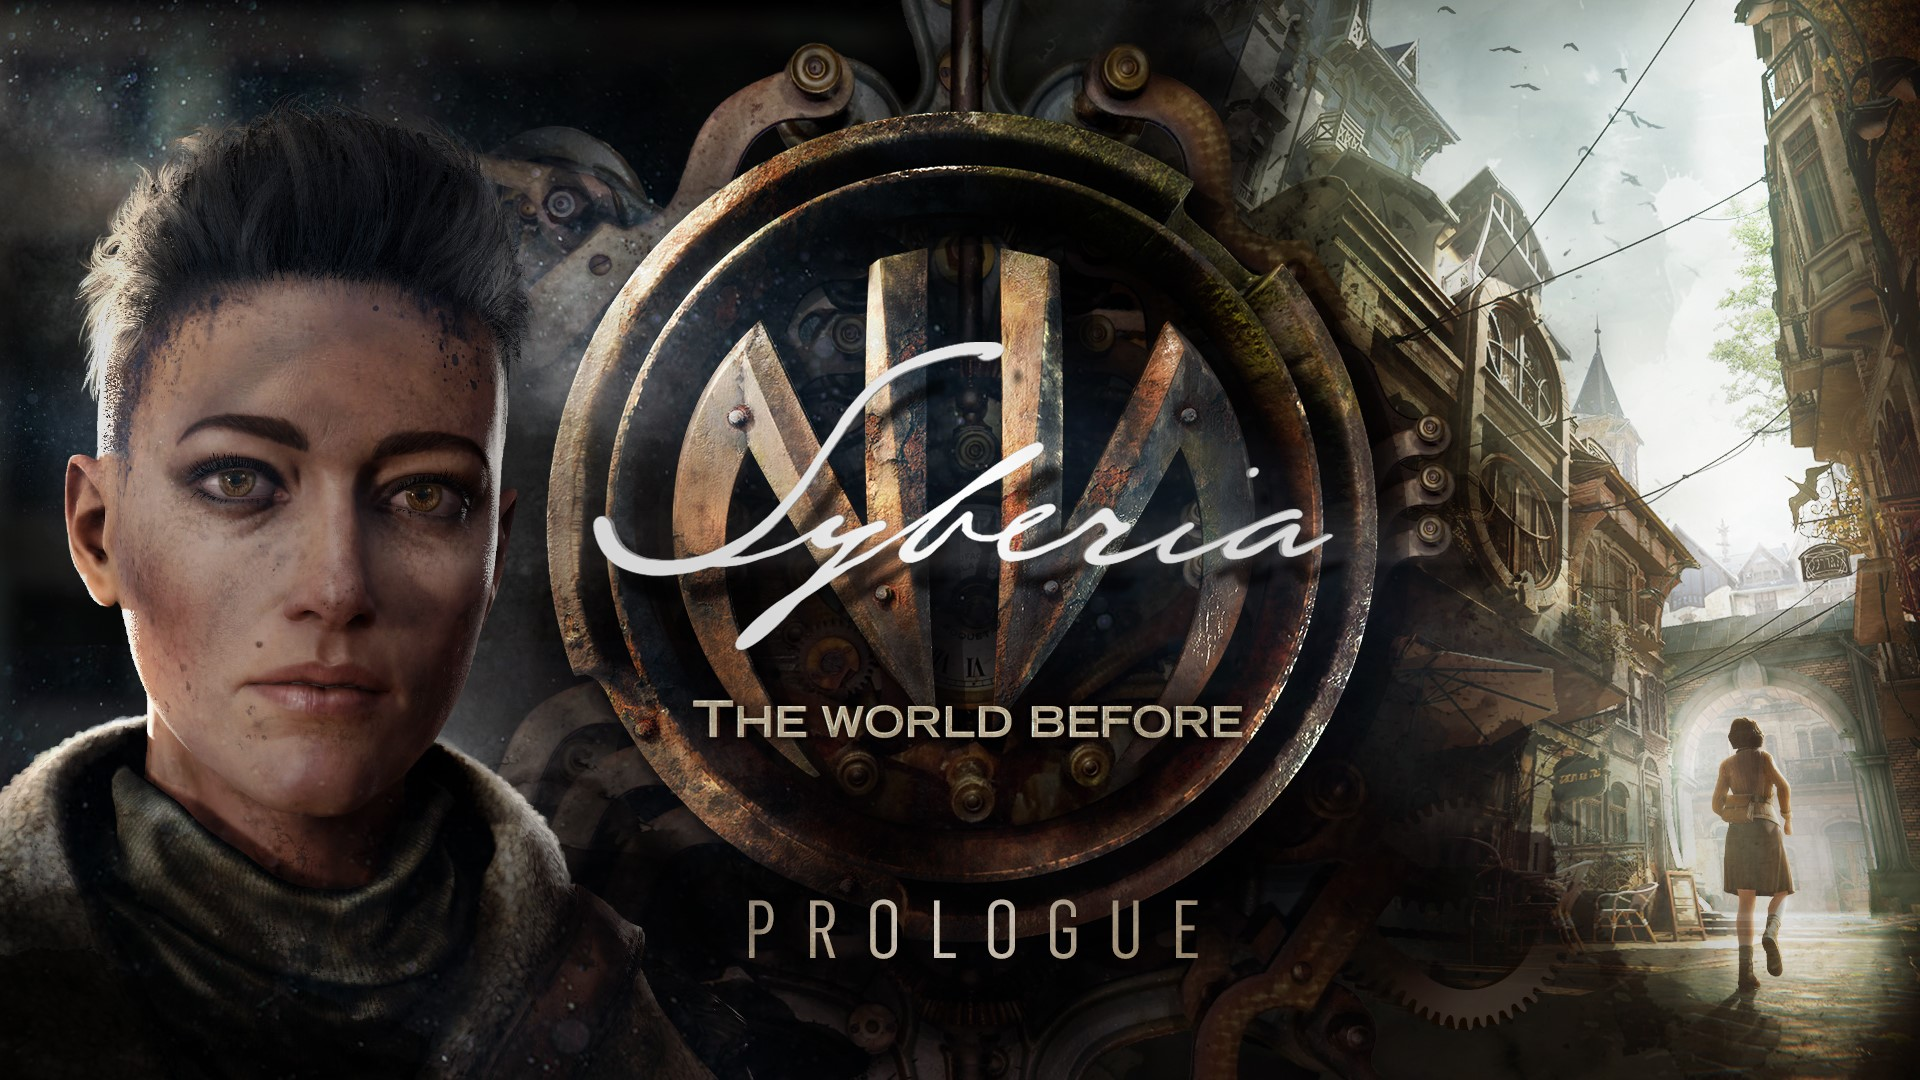 The Prologue Of The New Syberia's Adventure Is Now Free On Steam